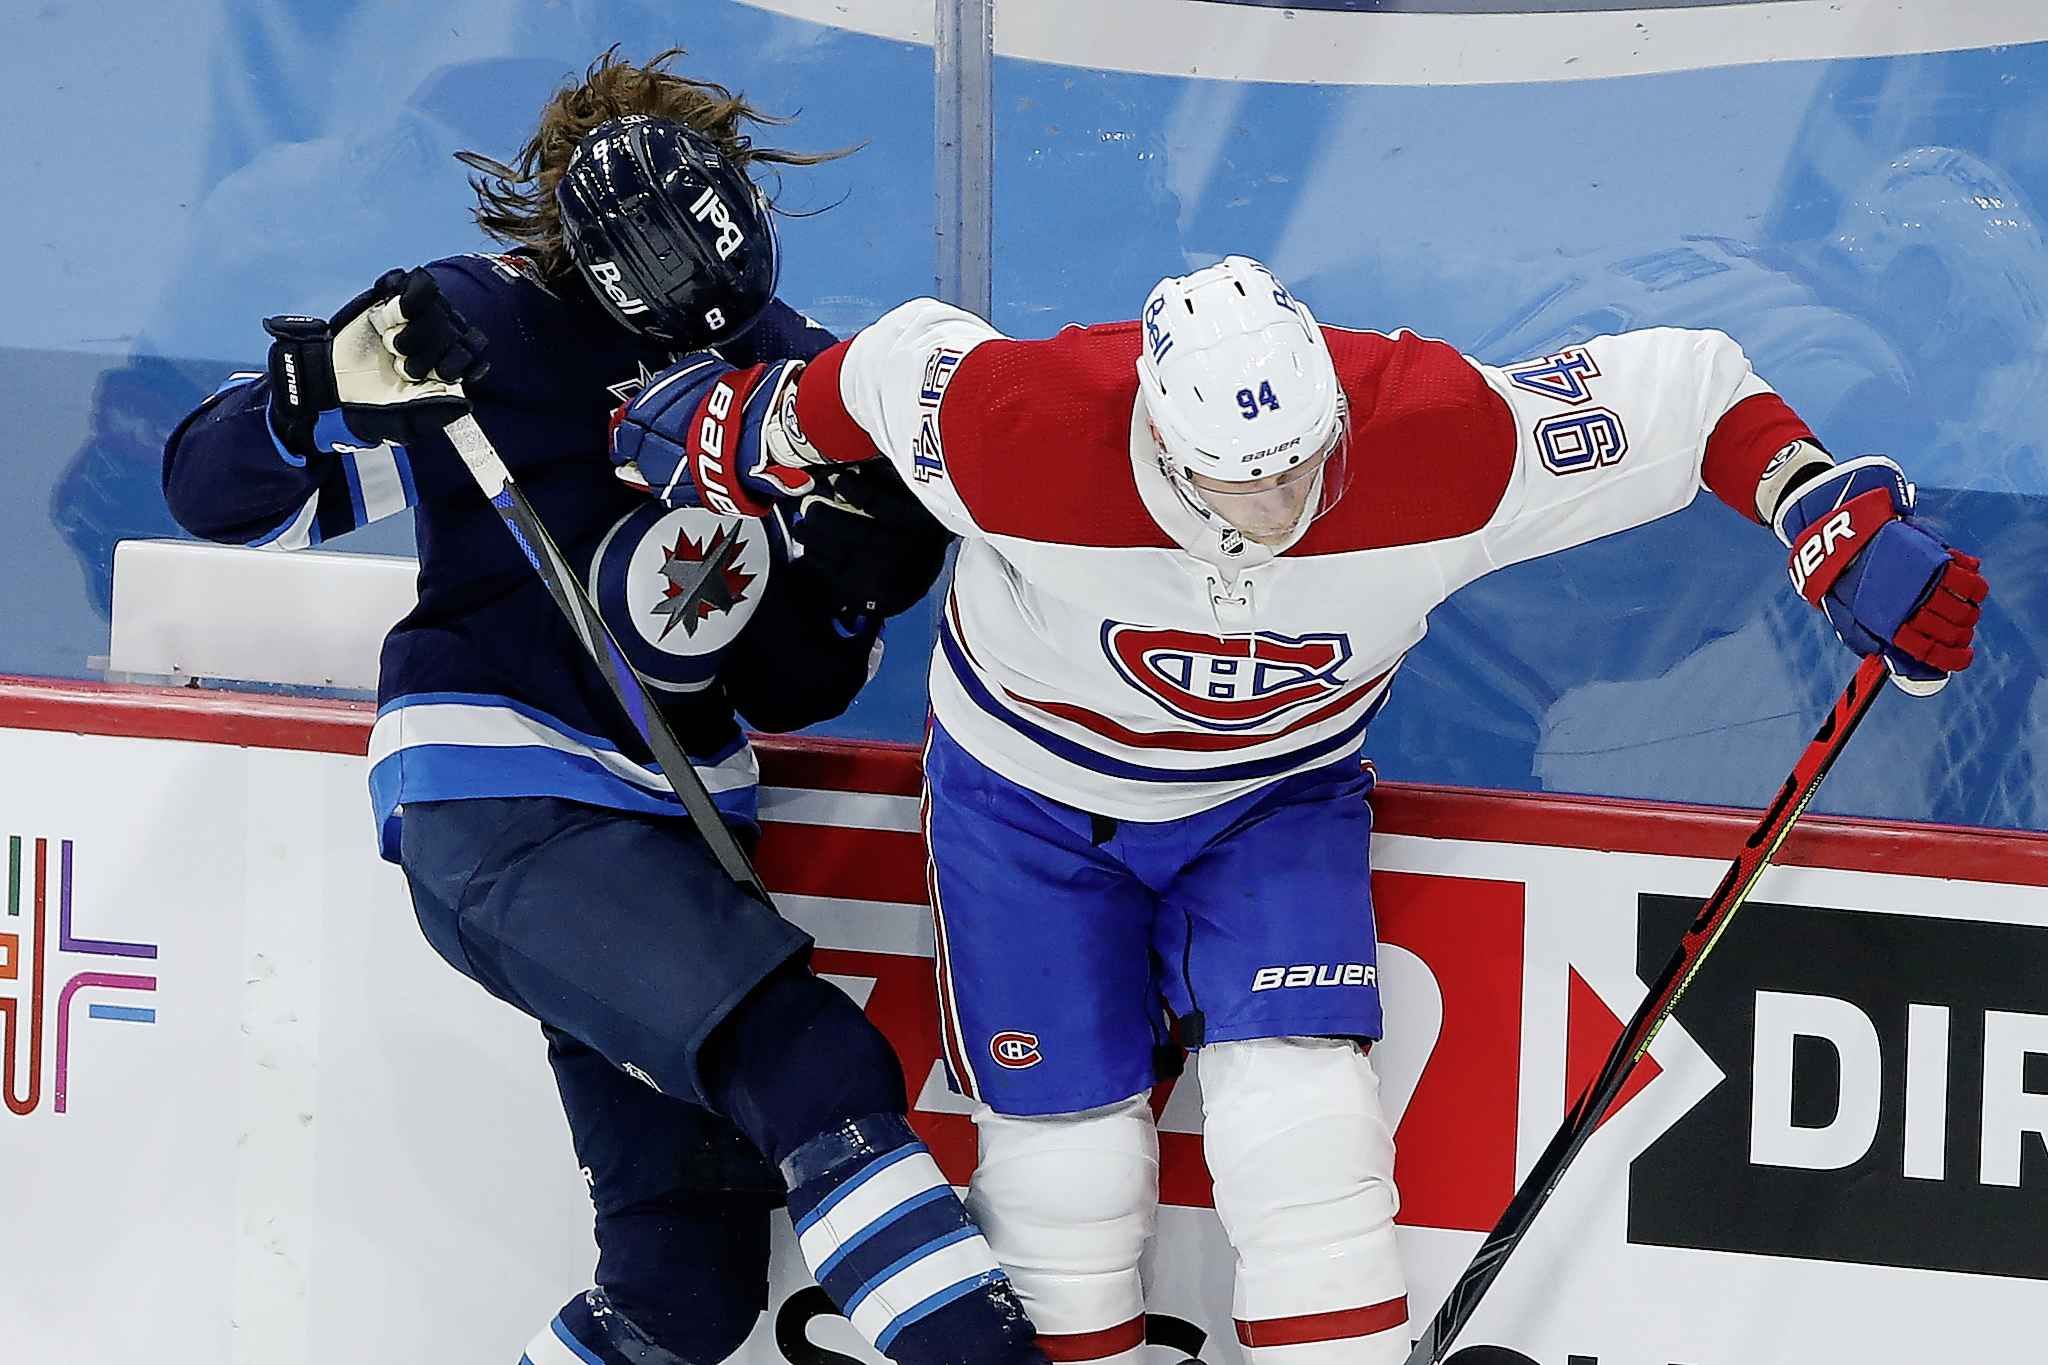 Winnipeg Jets' Sami Niku's (8) helmet flies after a collision with Montreal Canadiens' Corey Perry (94) during the first period. (John Woods / The Canadian Press)